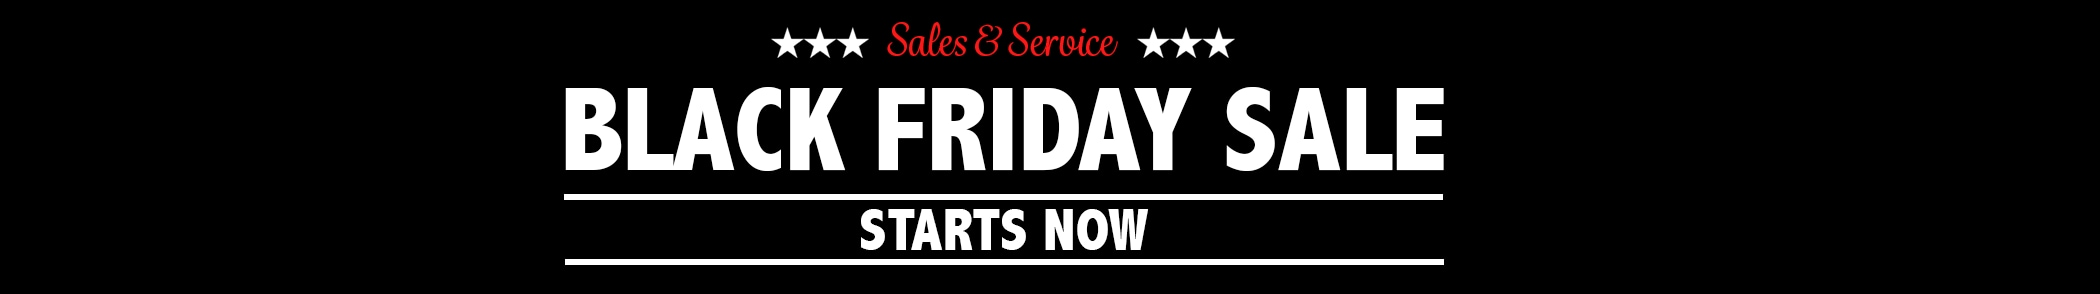 Service and Sales Specials Black Friday